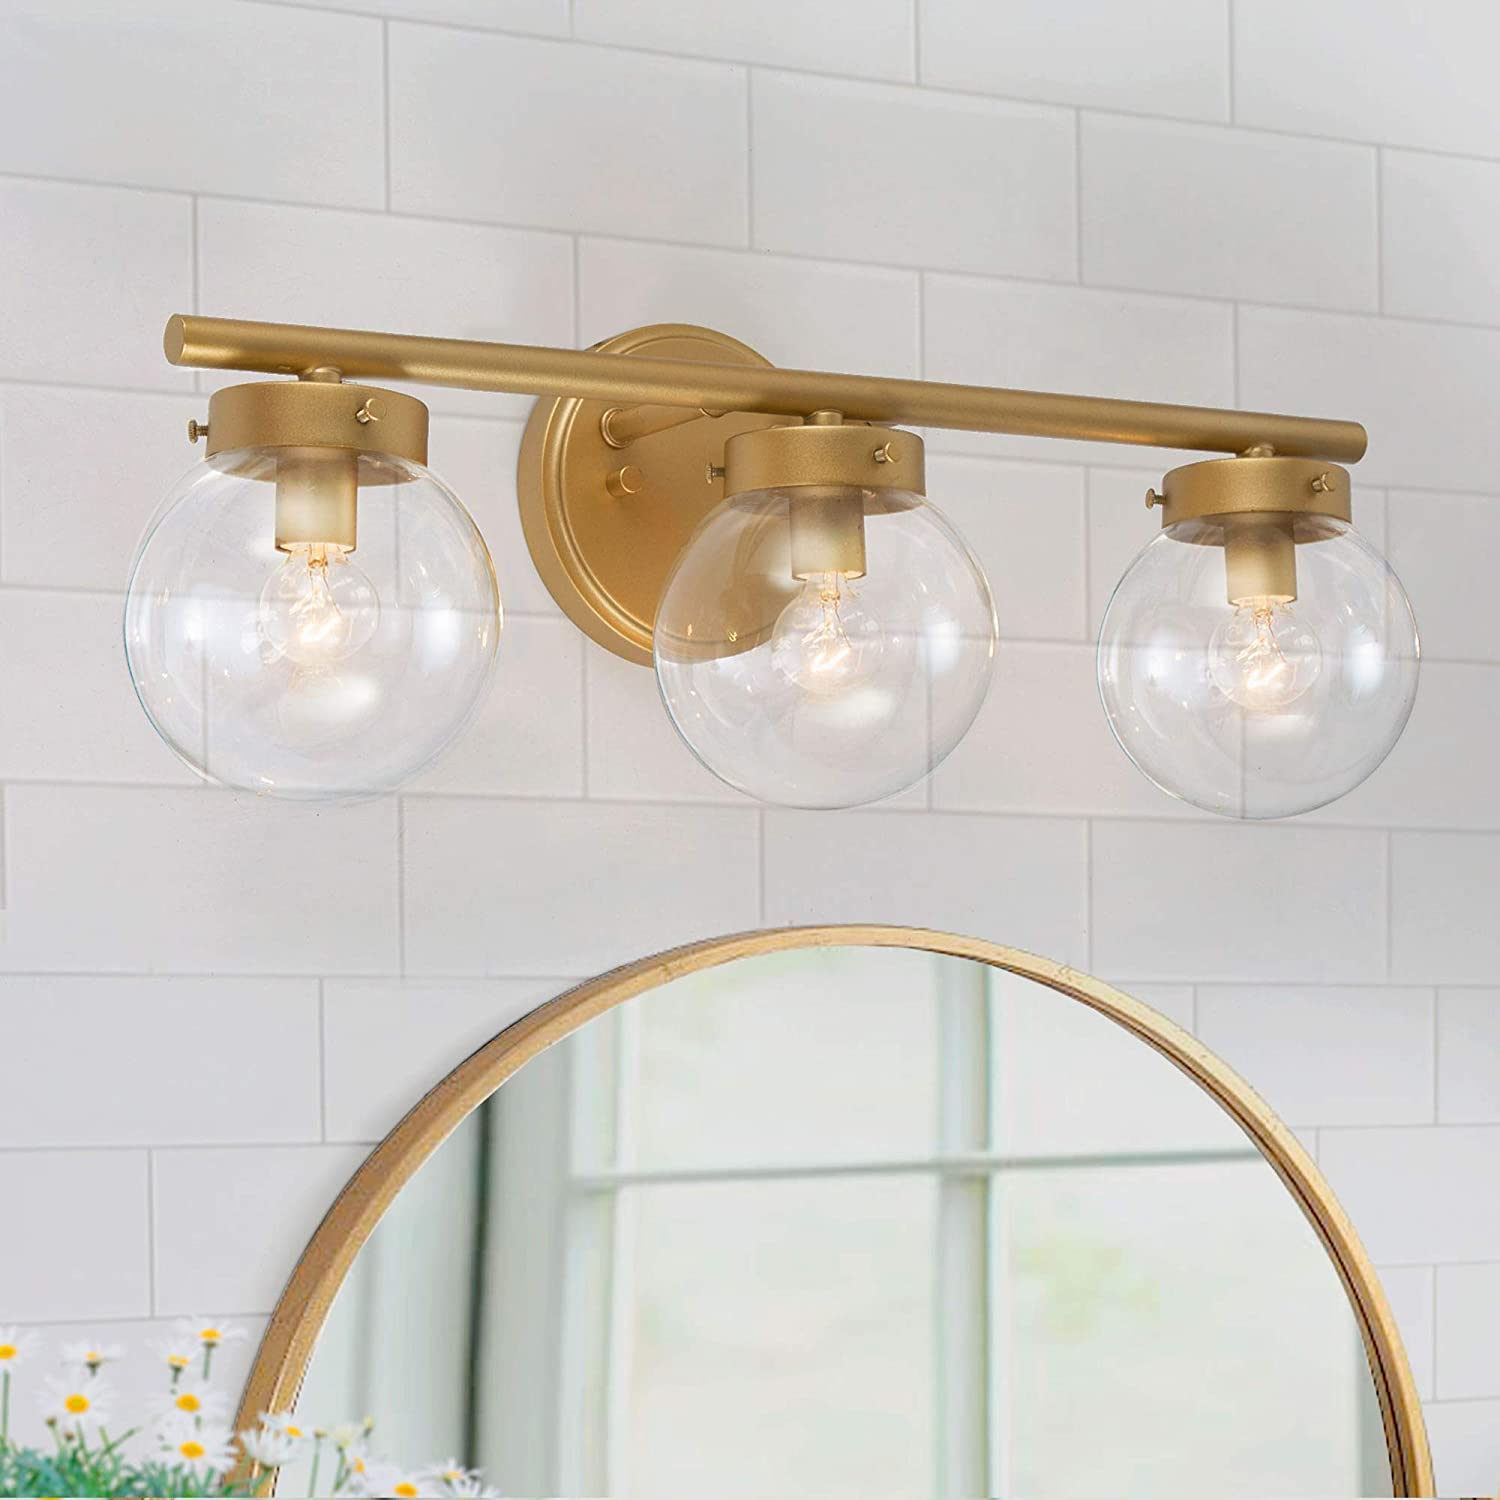 Bathroom Light Fixtures Gold Vanity Light With 3 Clear Globe Glass 19 5 L X6 W X 7 5 H Amazon Com